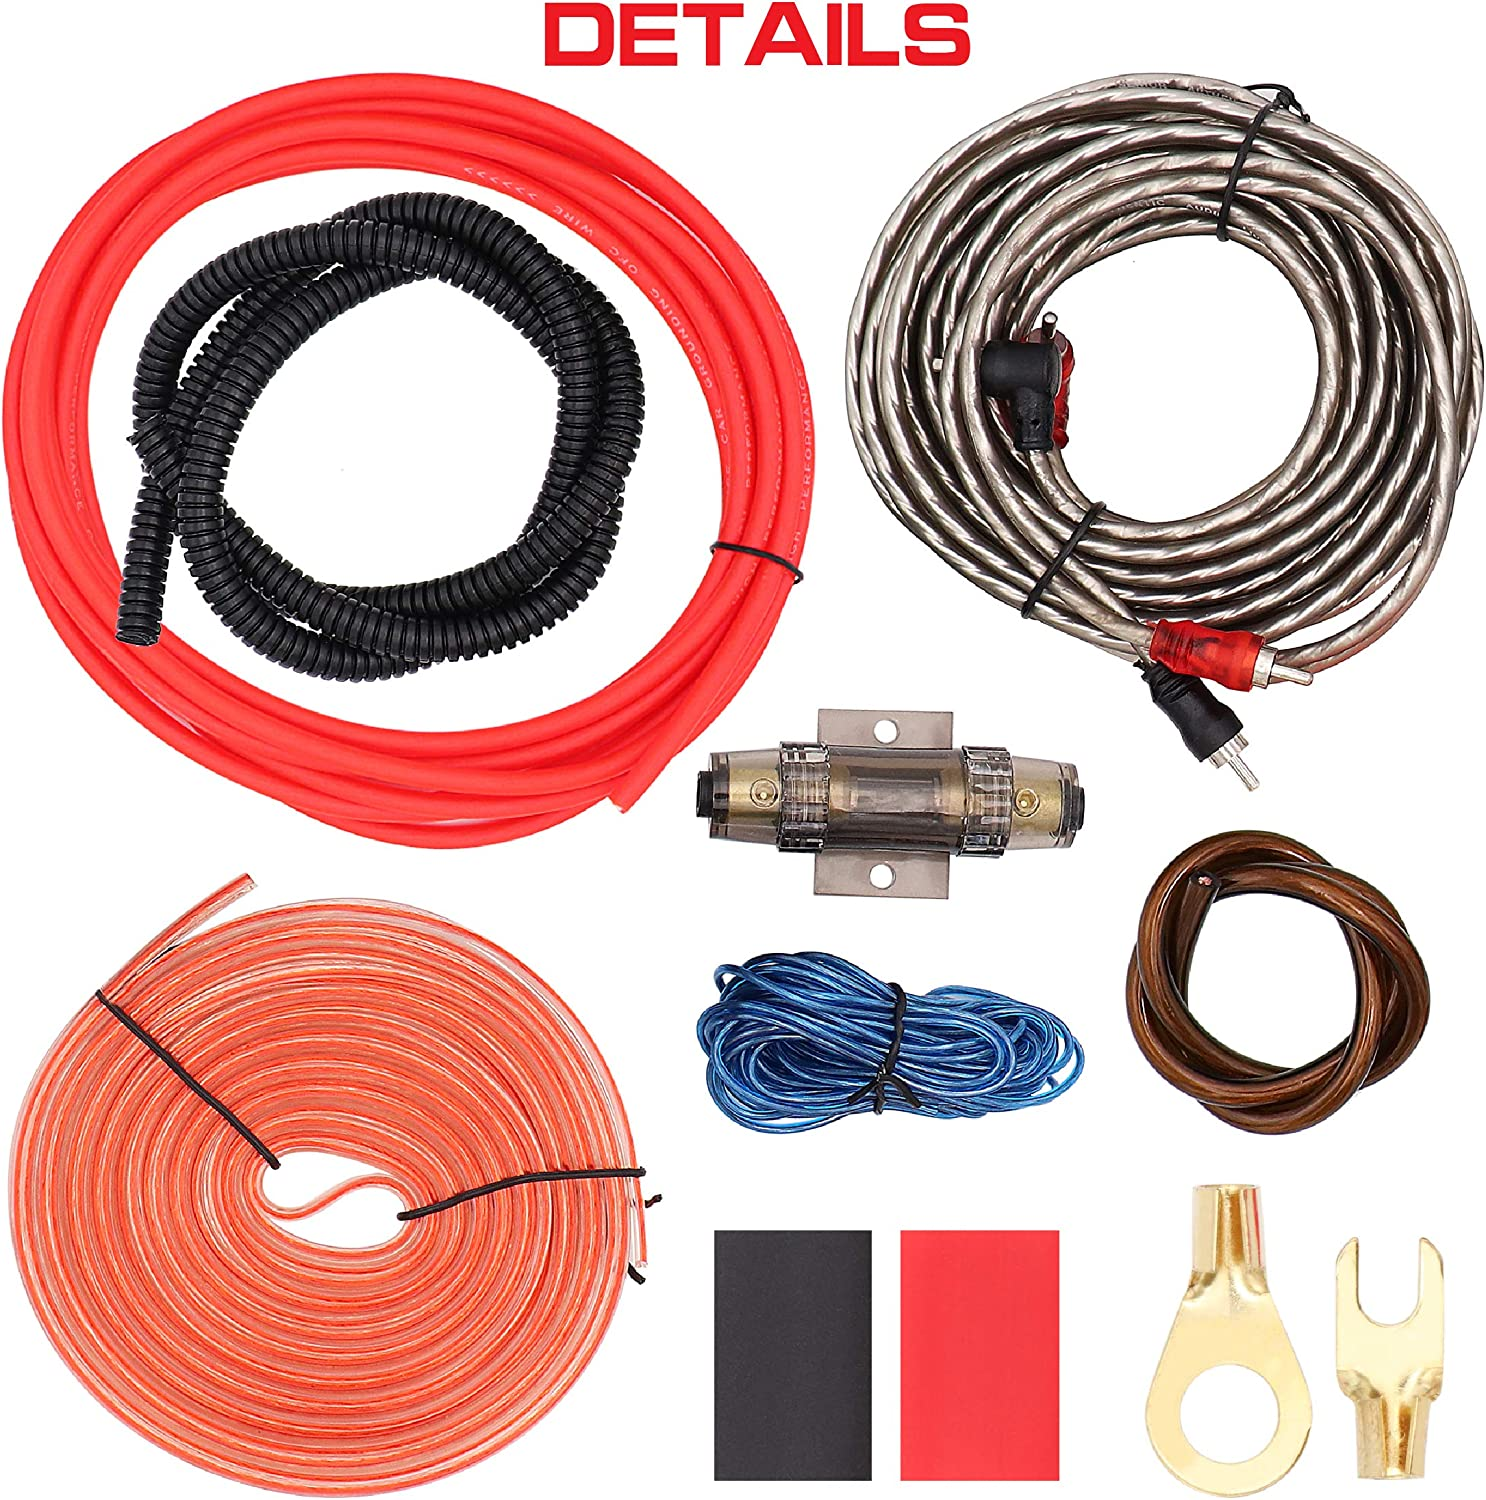 Car Amp Wiring Kit Helps You Make Connections and Brings Power to Your Radio Subwoofer and Speakers LEIGESAUDIO 8 Gauge Subwoofer Wiring Kit Ture 8 AWG Amplifier Installation Wiring Kit